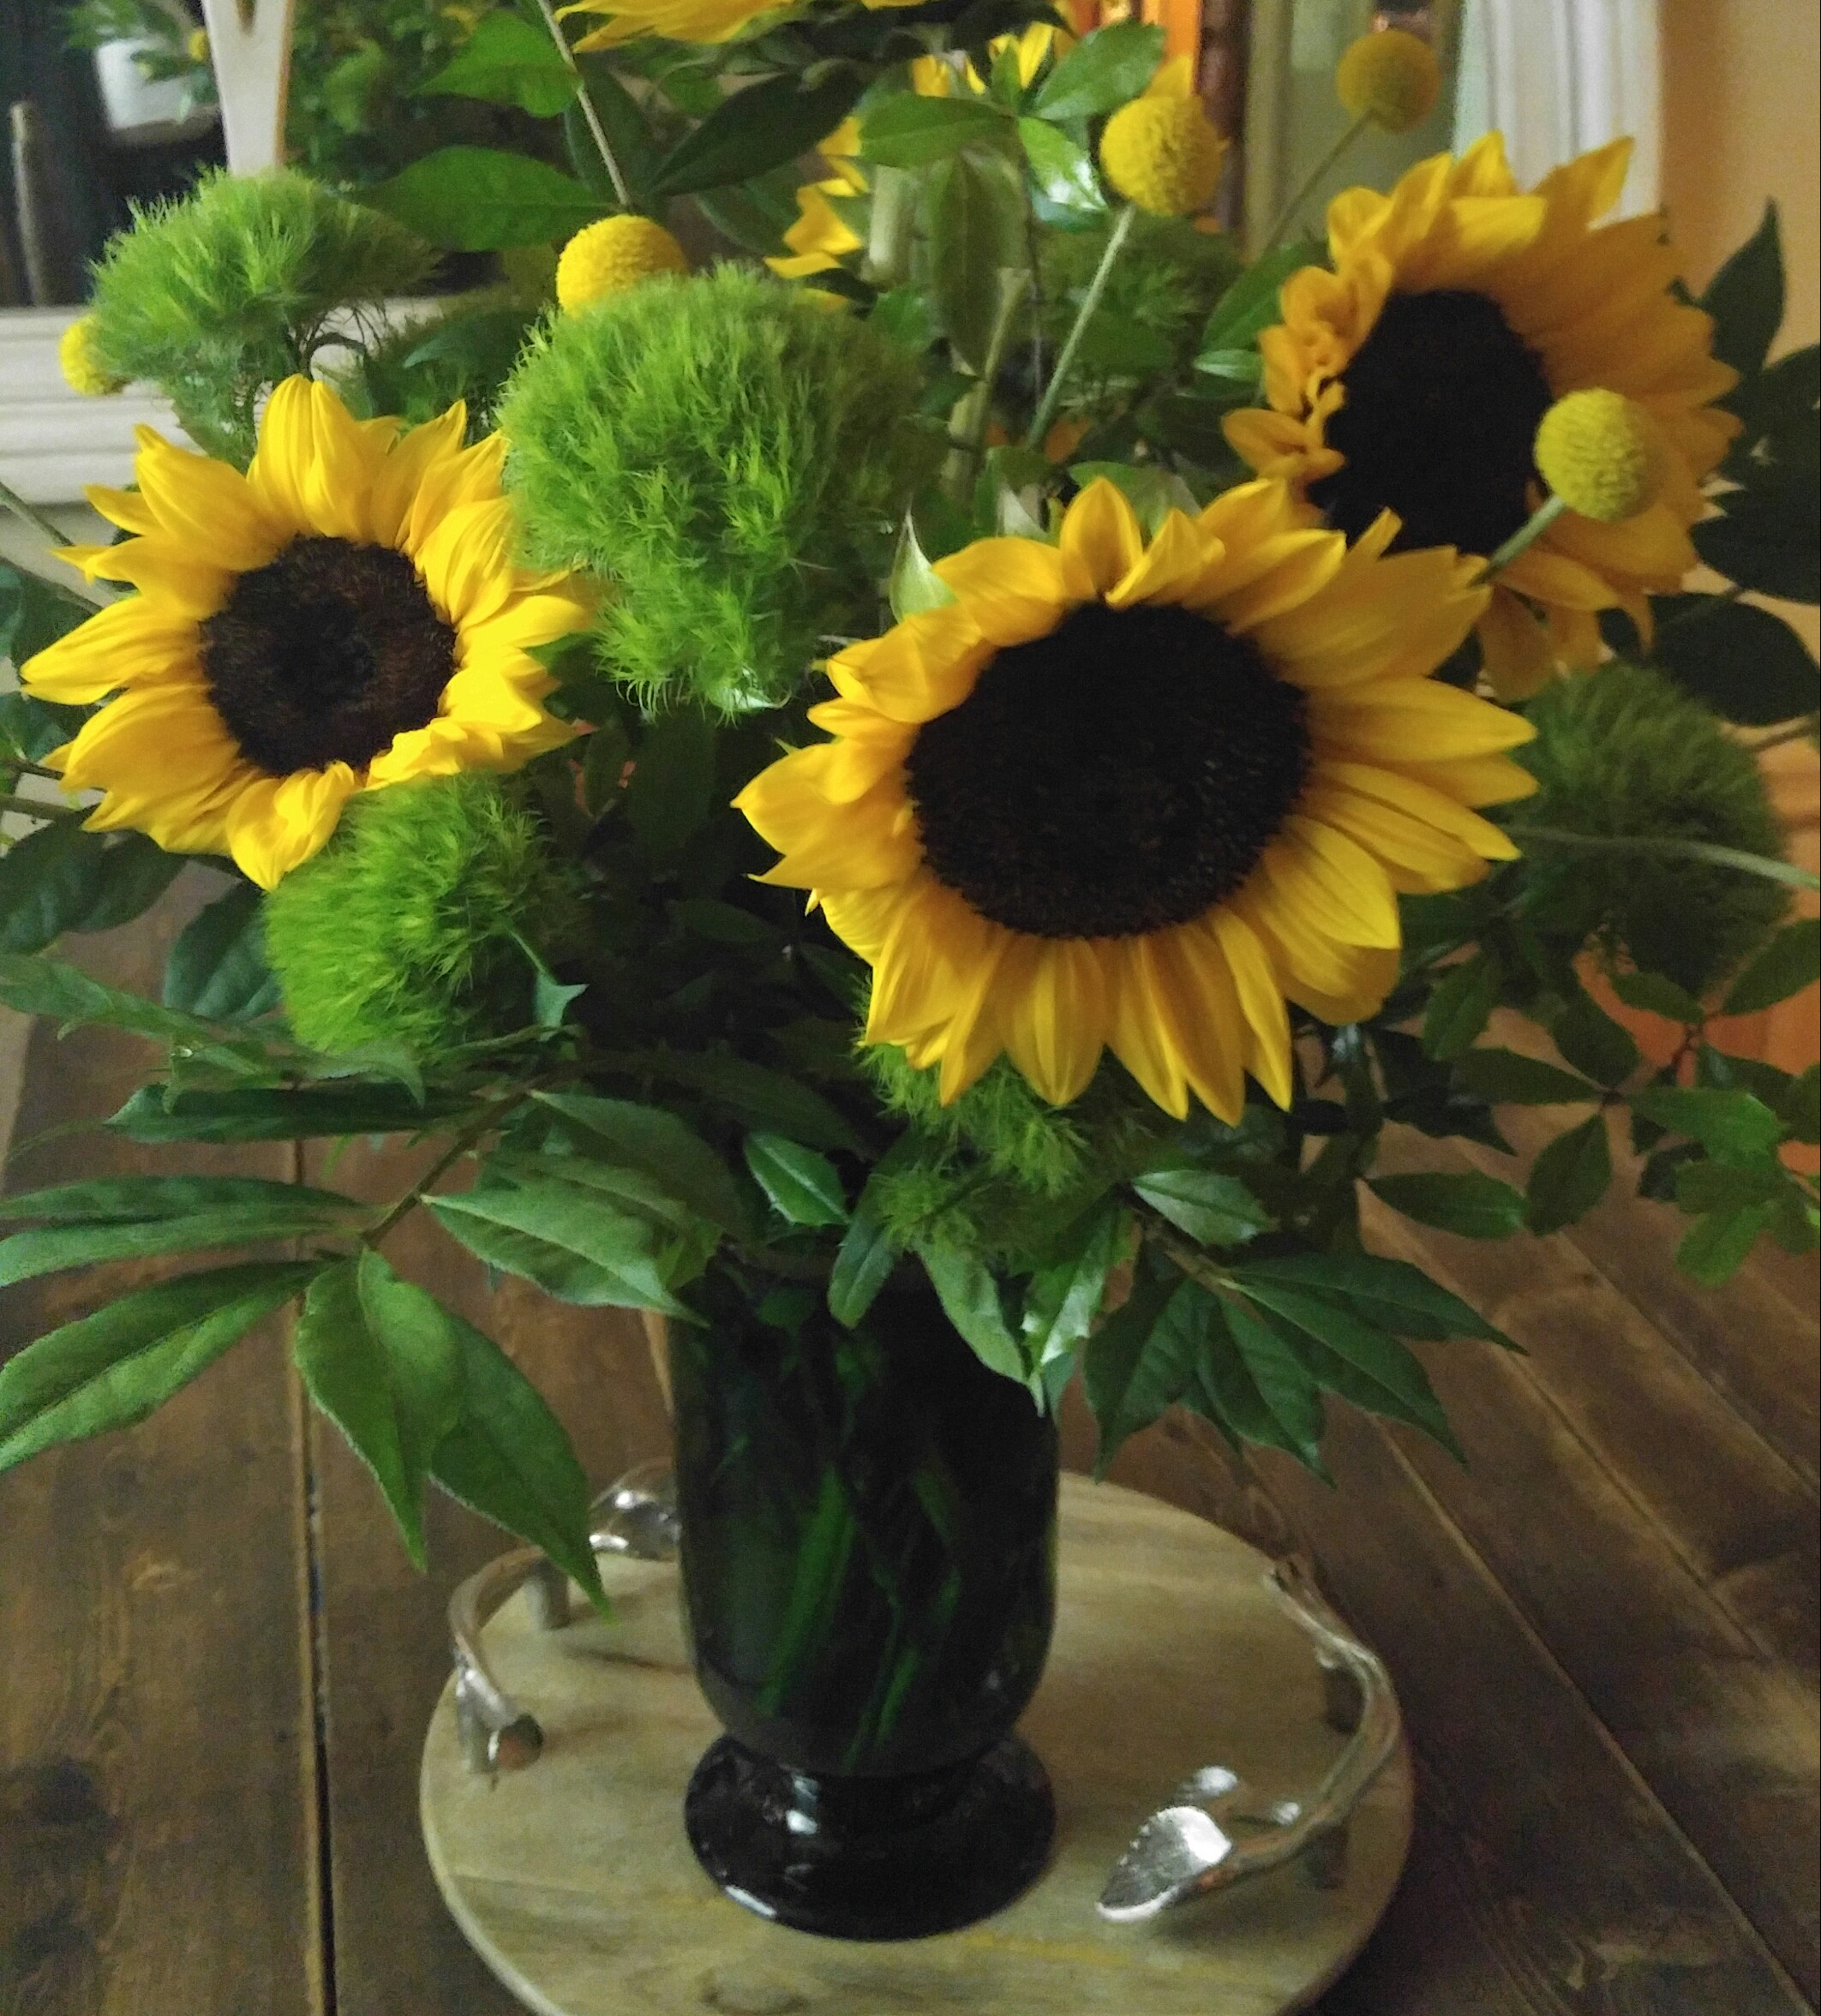 Sunflowers in Vintage Vase